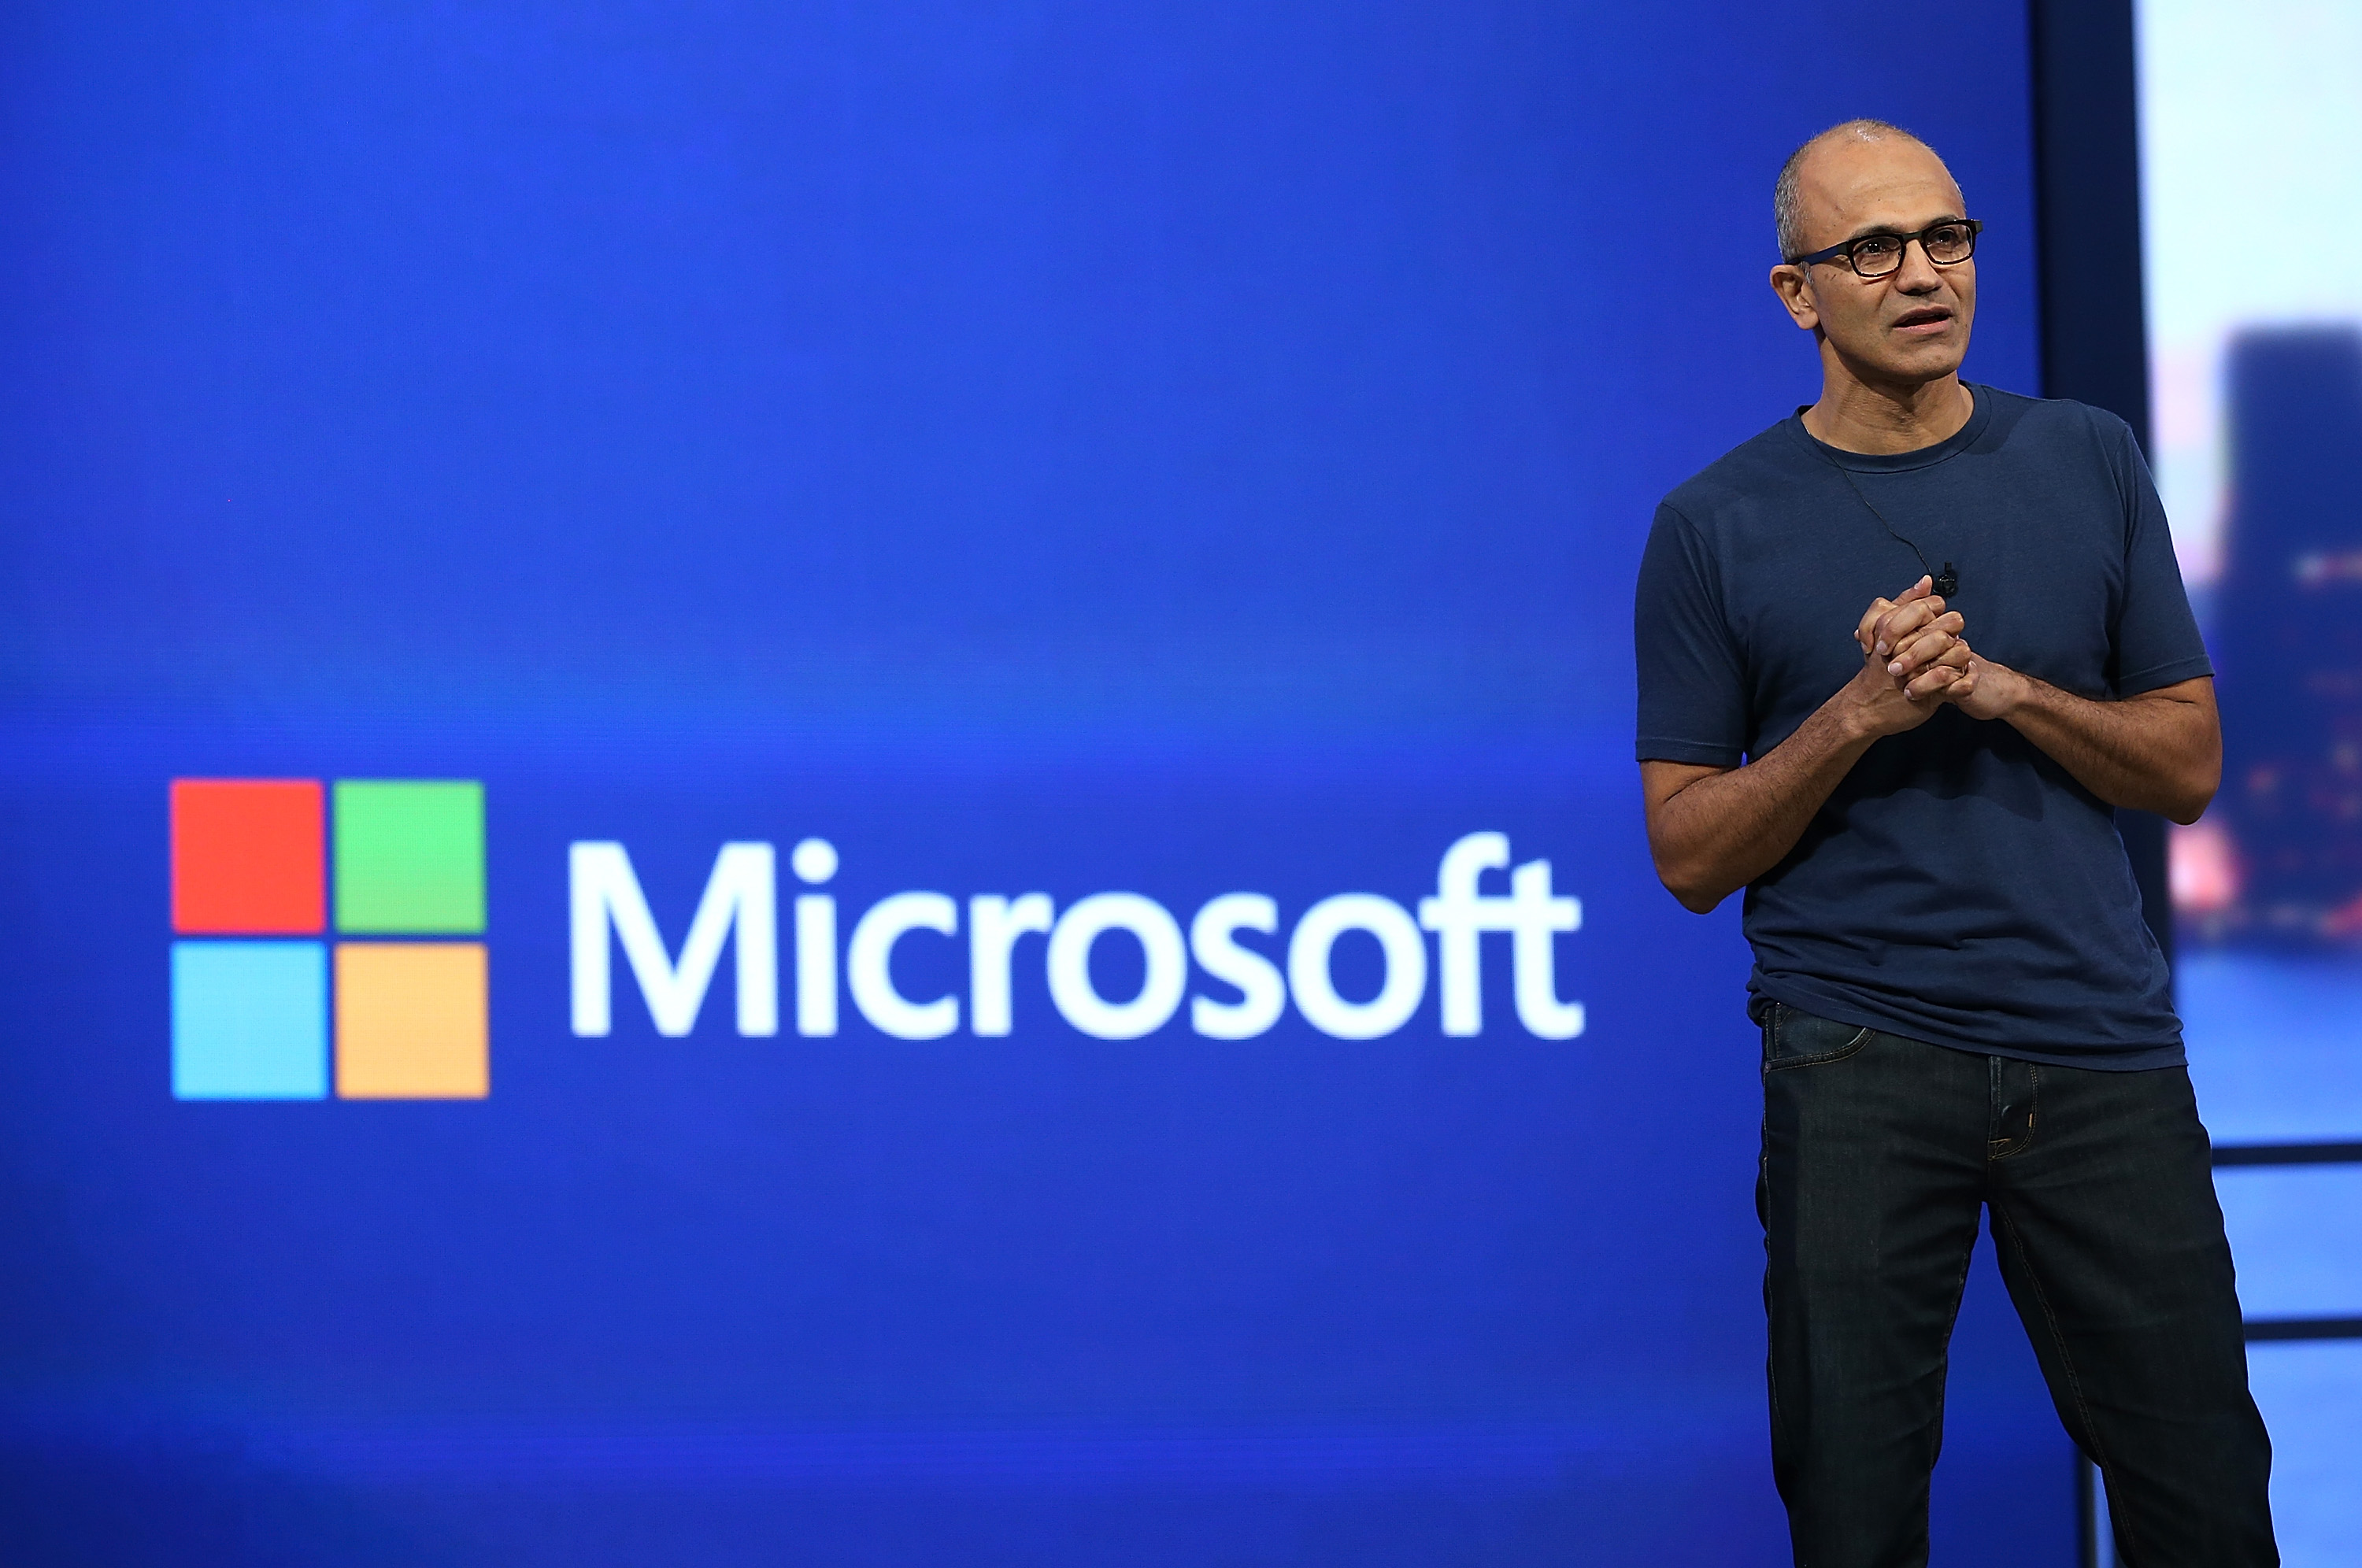 Microsoft CEO Satya Nadella delivers a keynote address during the 2014 Microsoft Build developer conference on April 2, 2014 in San Francisco, California.